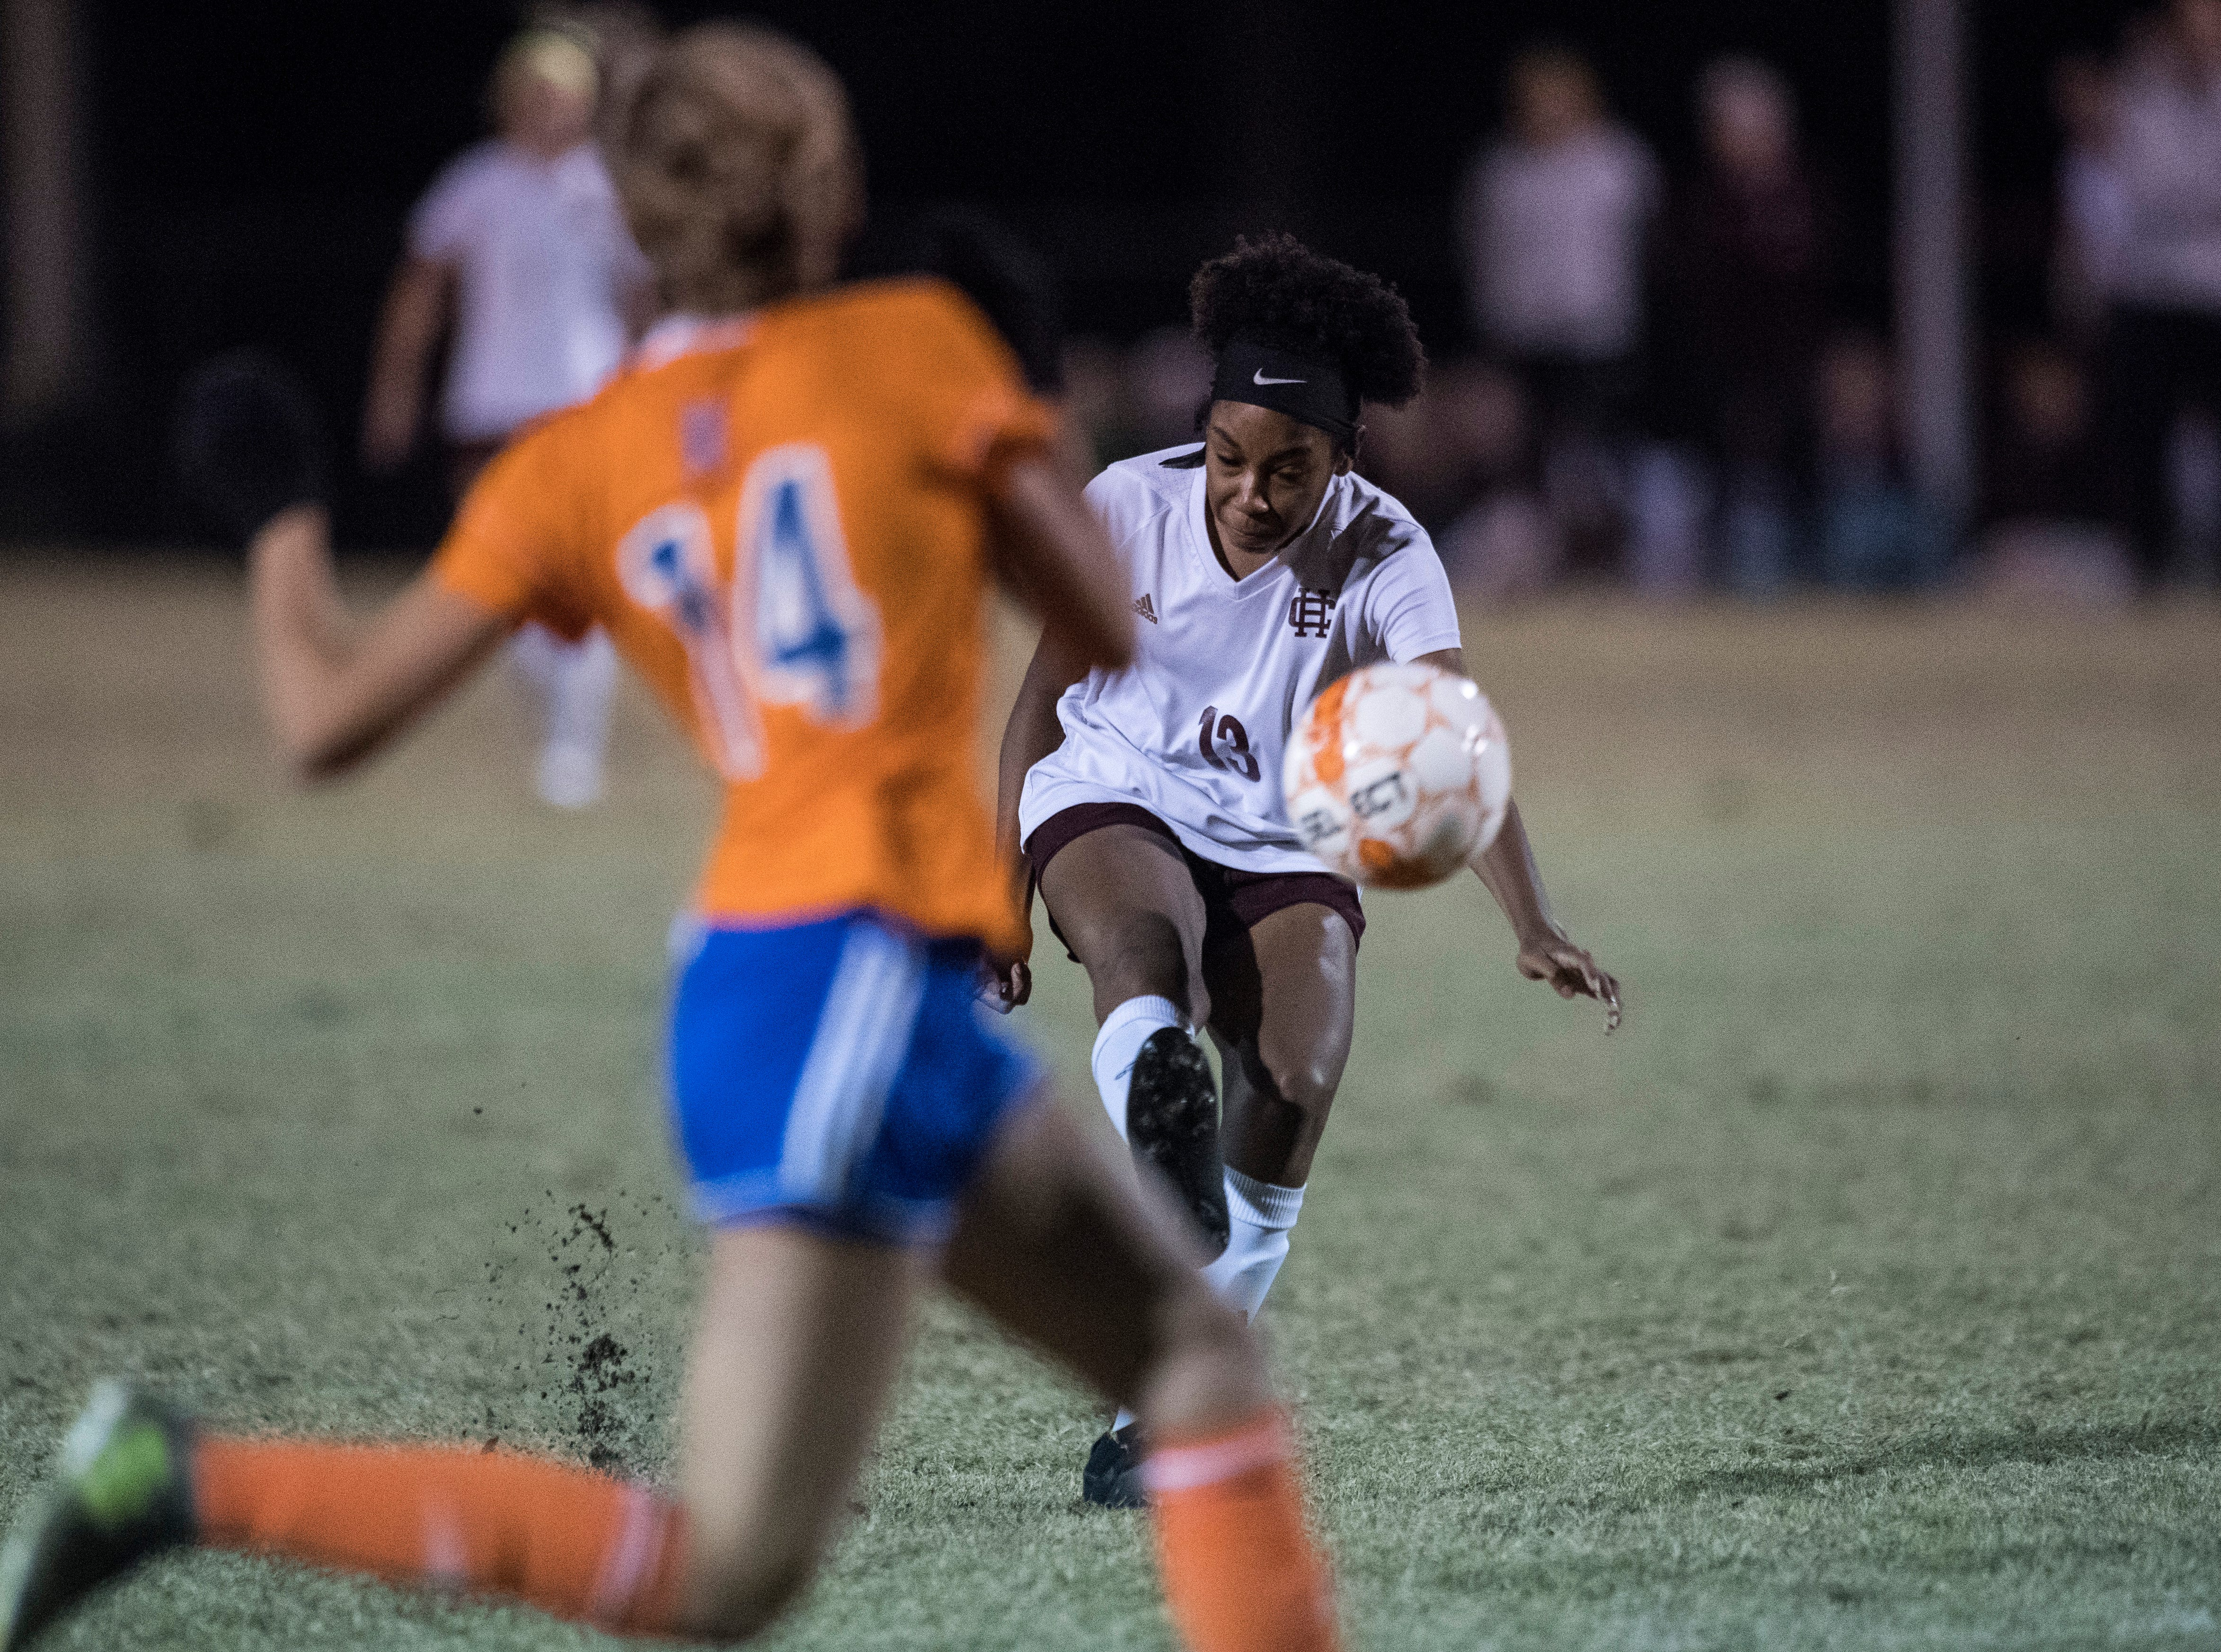 Henderson's Nadia Gilbert (13) kicks the ball towards the goal during the first round of the KHSAA state tournament at Marshall County High School Monday, Oct. 23, 2018.